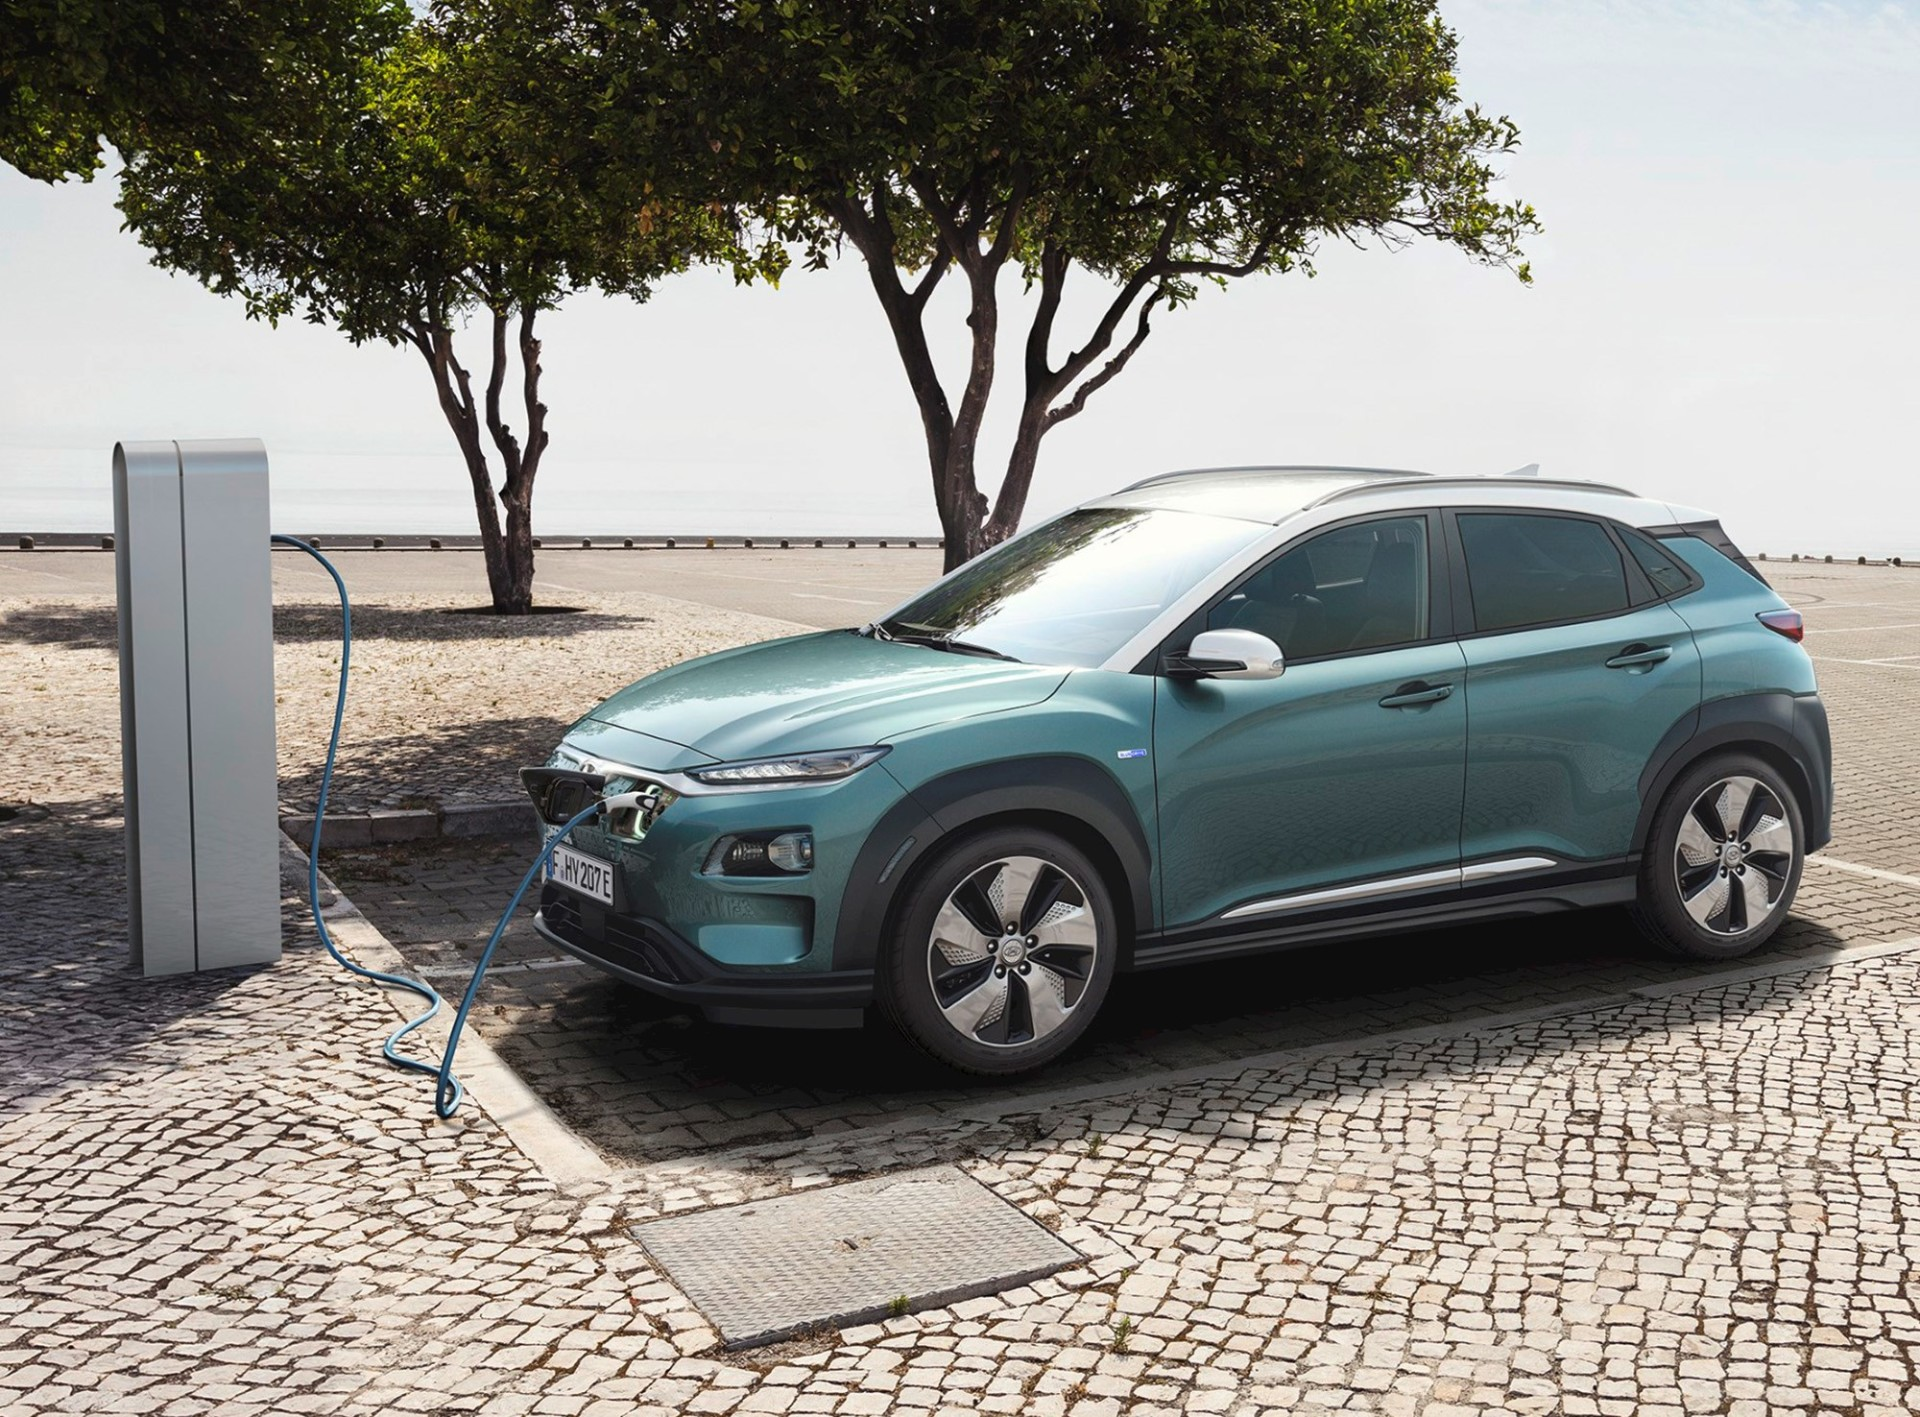 The Electric Motor Delivers 150kw Of And 395nm Immediate Toque Capable Propelling Suv From A Standstill To 100km H In 7 6 Seconds